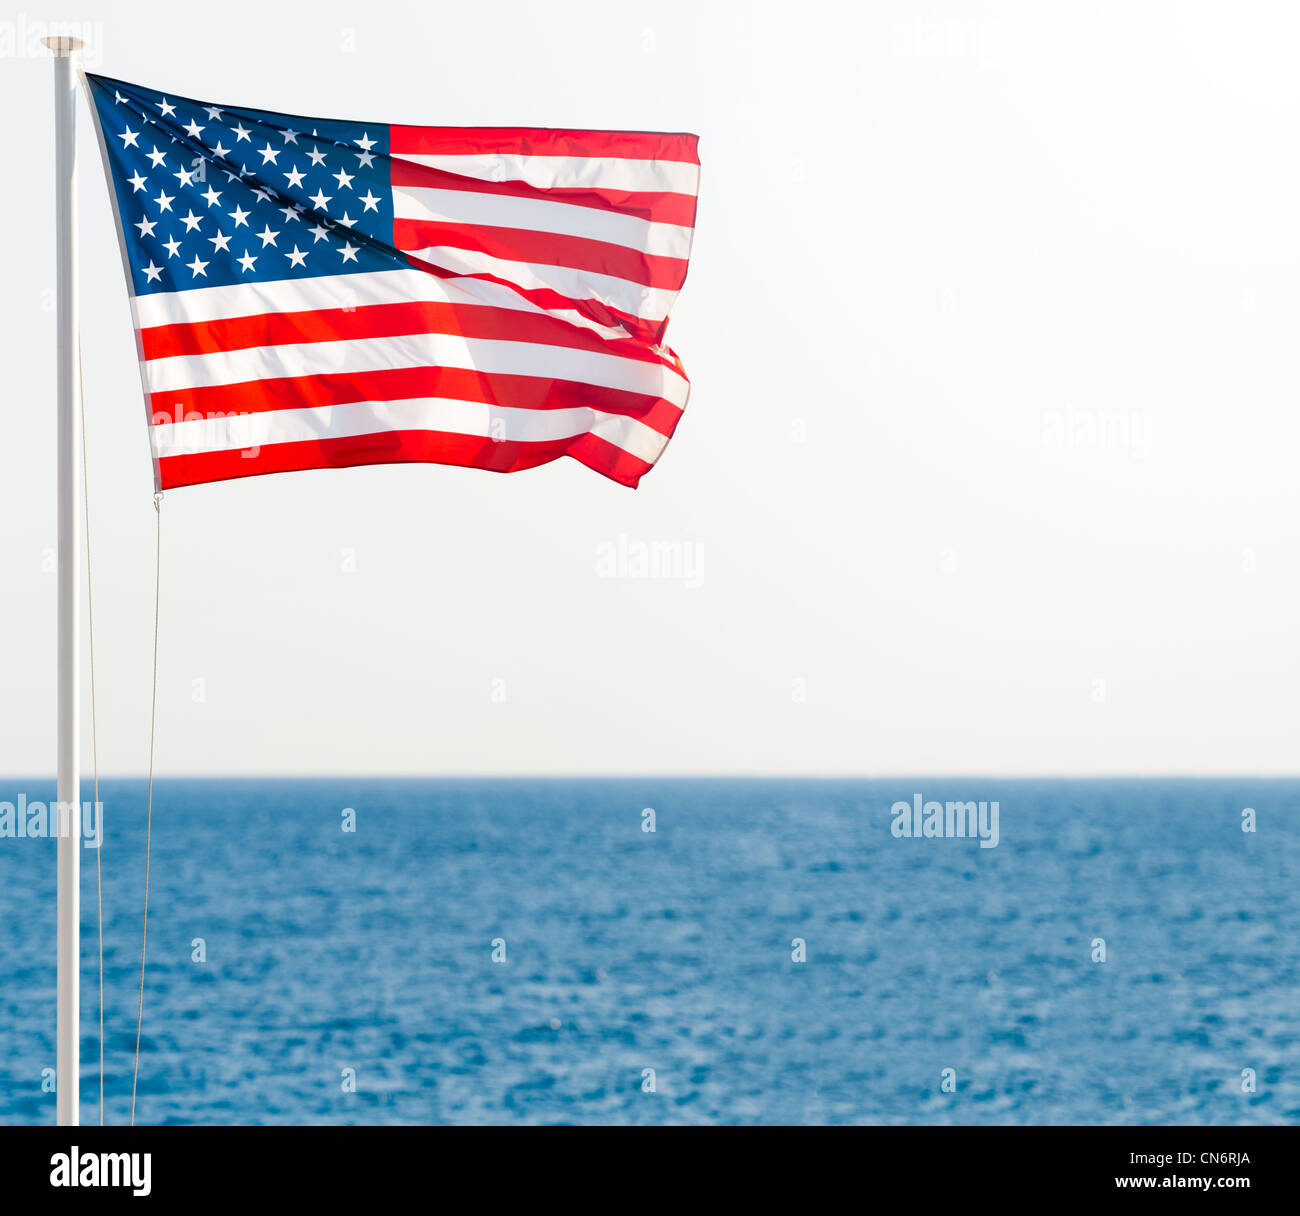 b9213e95bb17 united states of america flag on pole with blue sea in background and clear  sky. Lots of copy space.